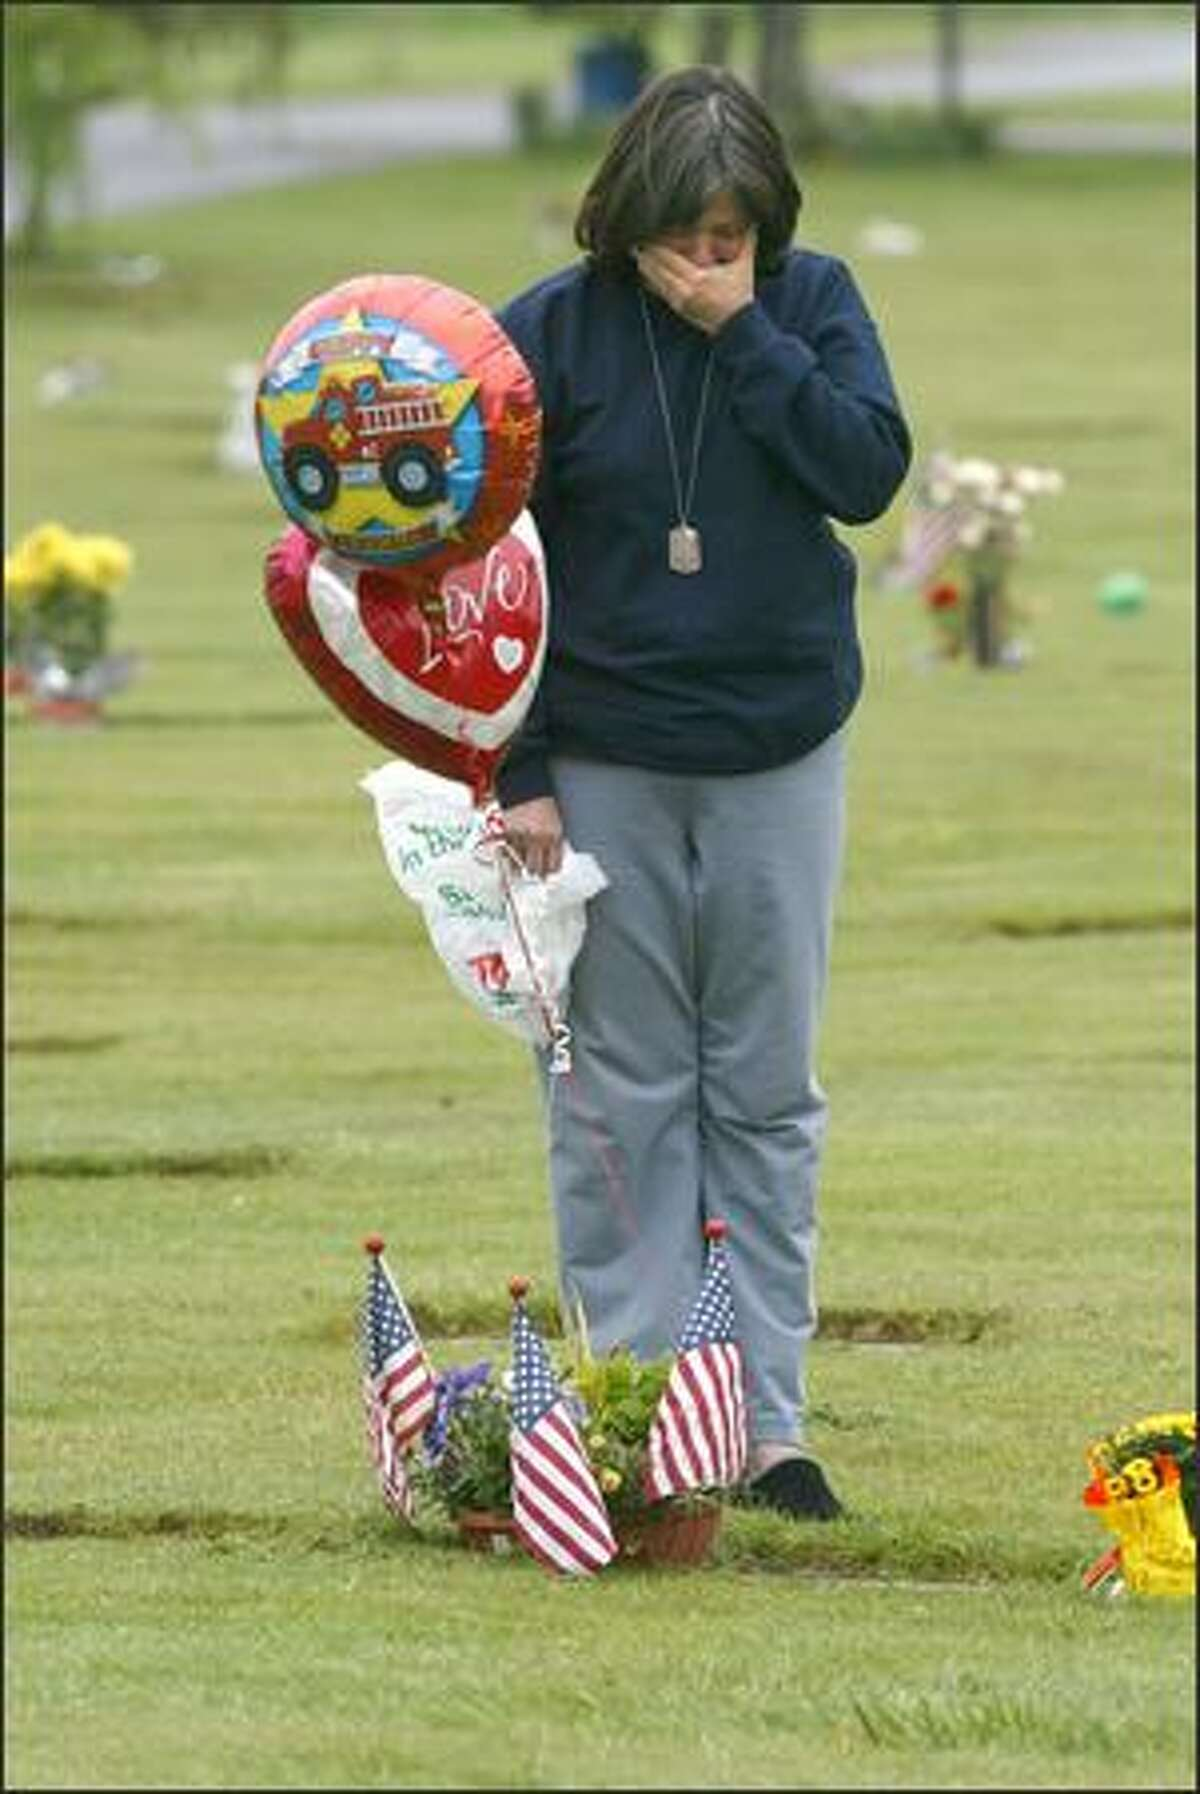 Shellie Starr drops off birthday balloons at the gravesite of her son, Jeff, at the Grand Army of the Republic Cemetery near Snohomish. He was killed last year on Memorial Day, just two days before he would have returned to civilian life.